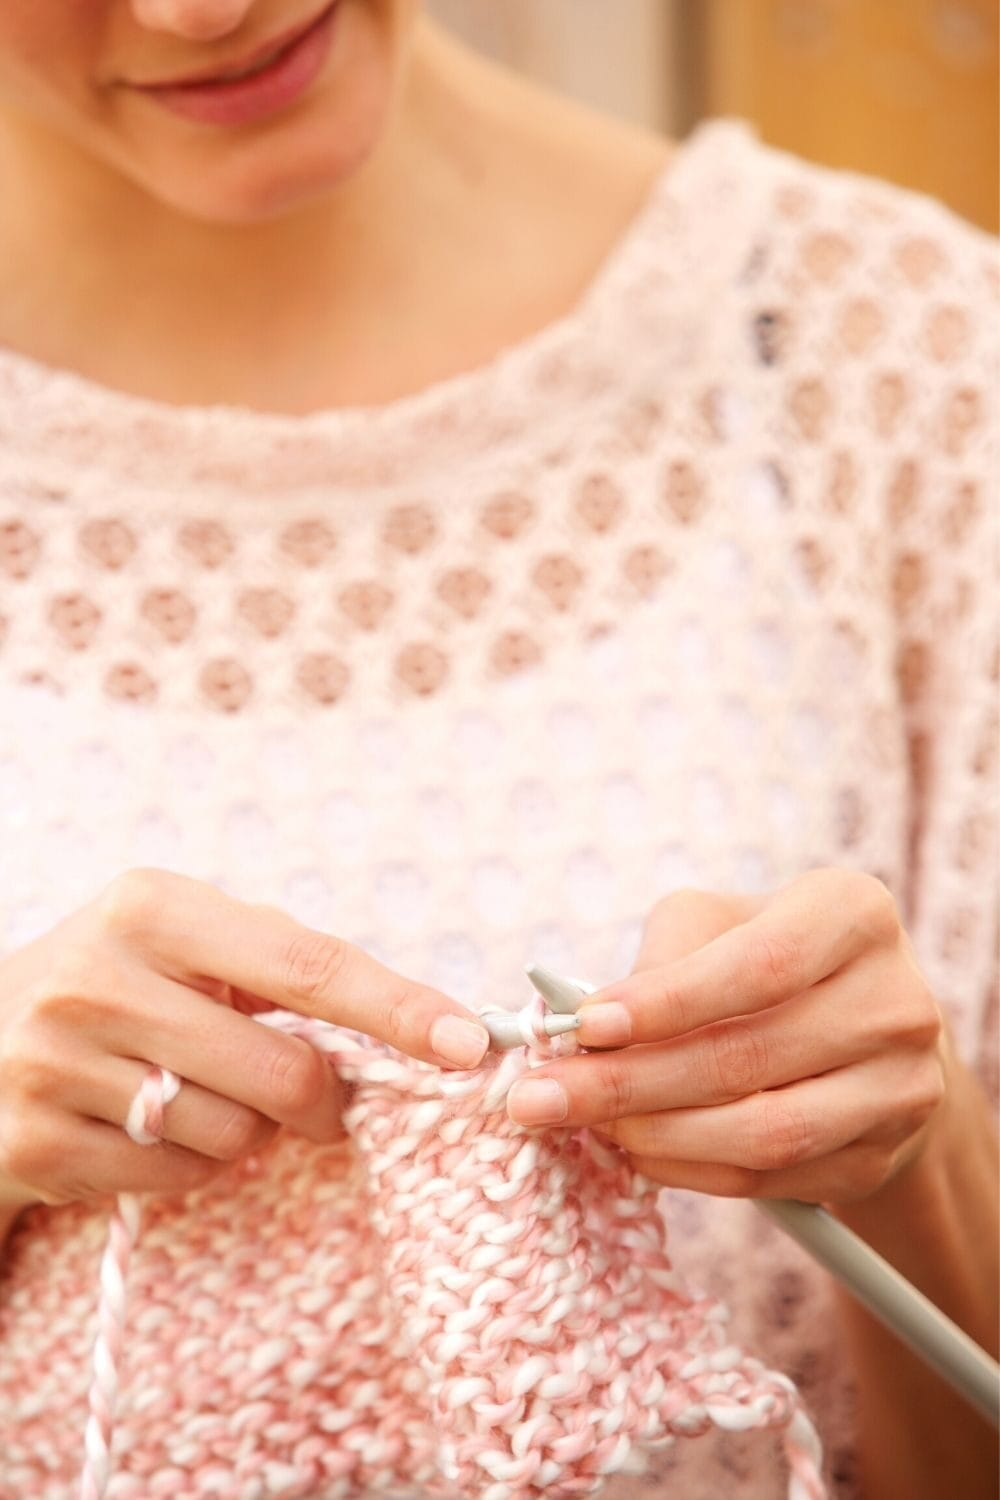 woman knitting with pink yarn